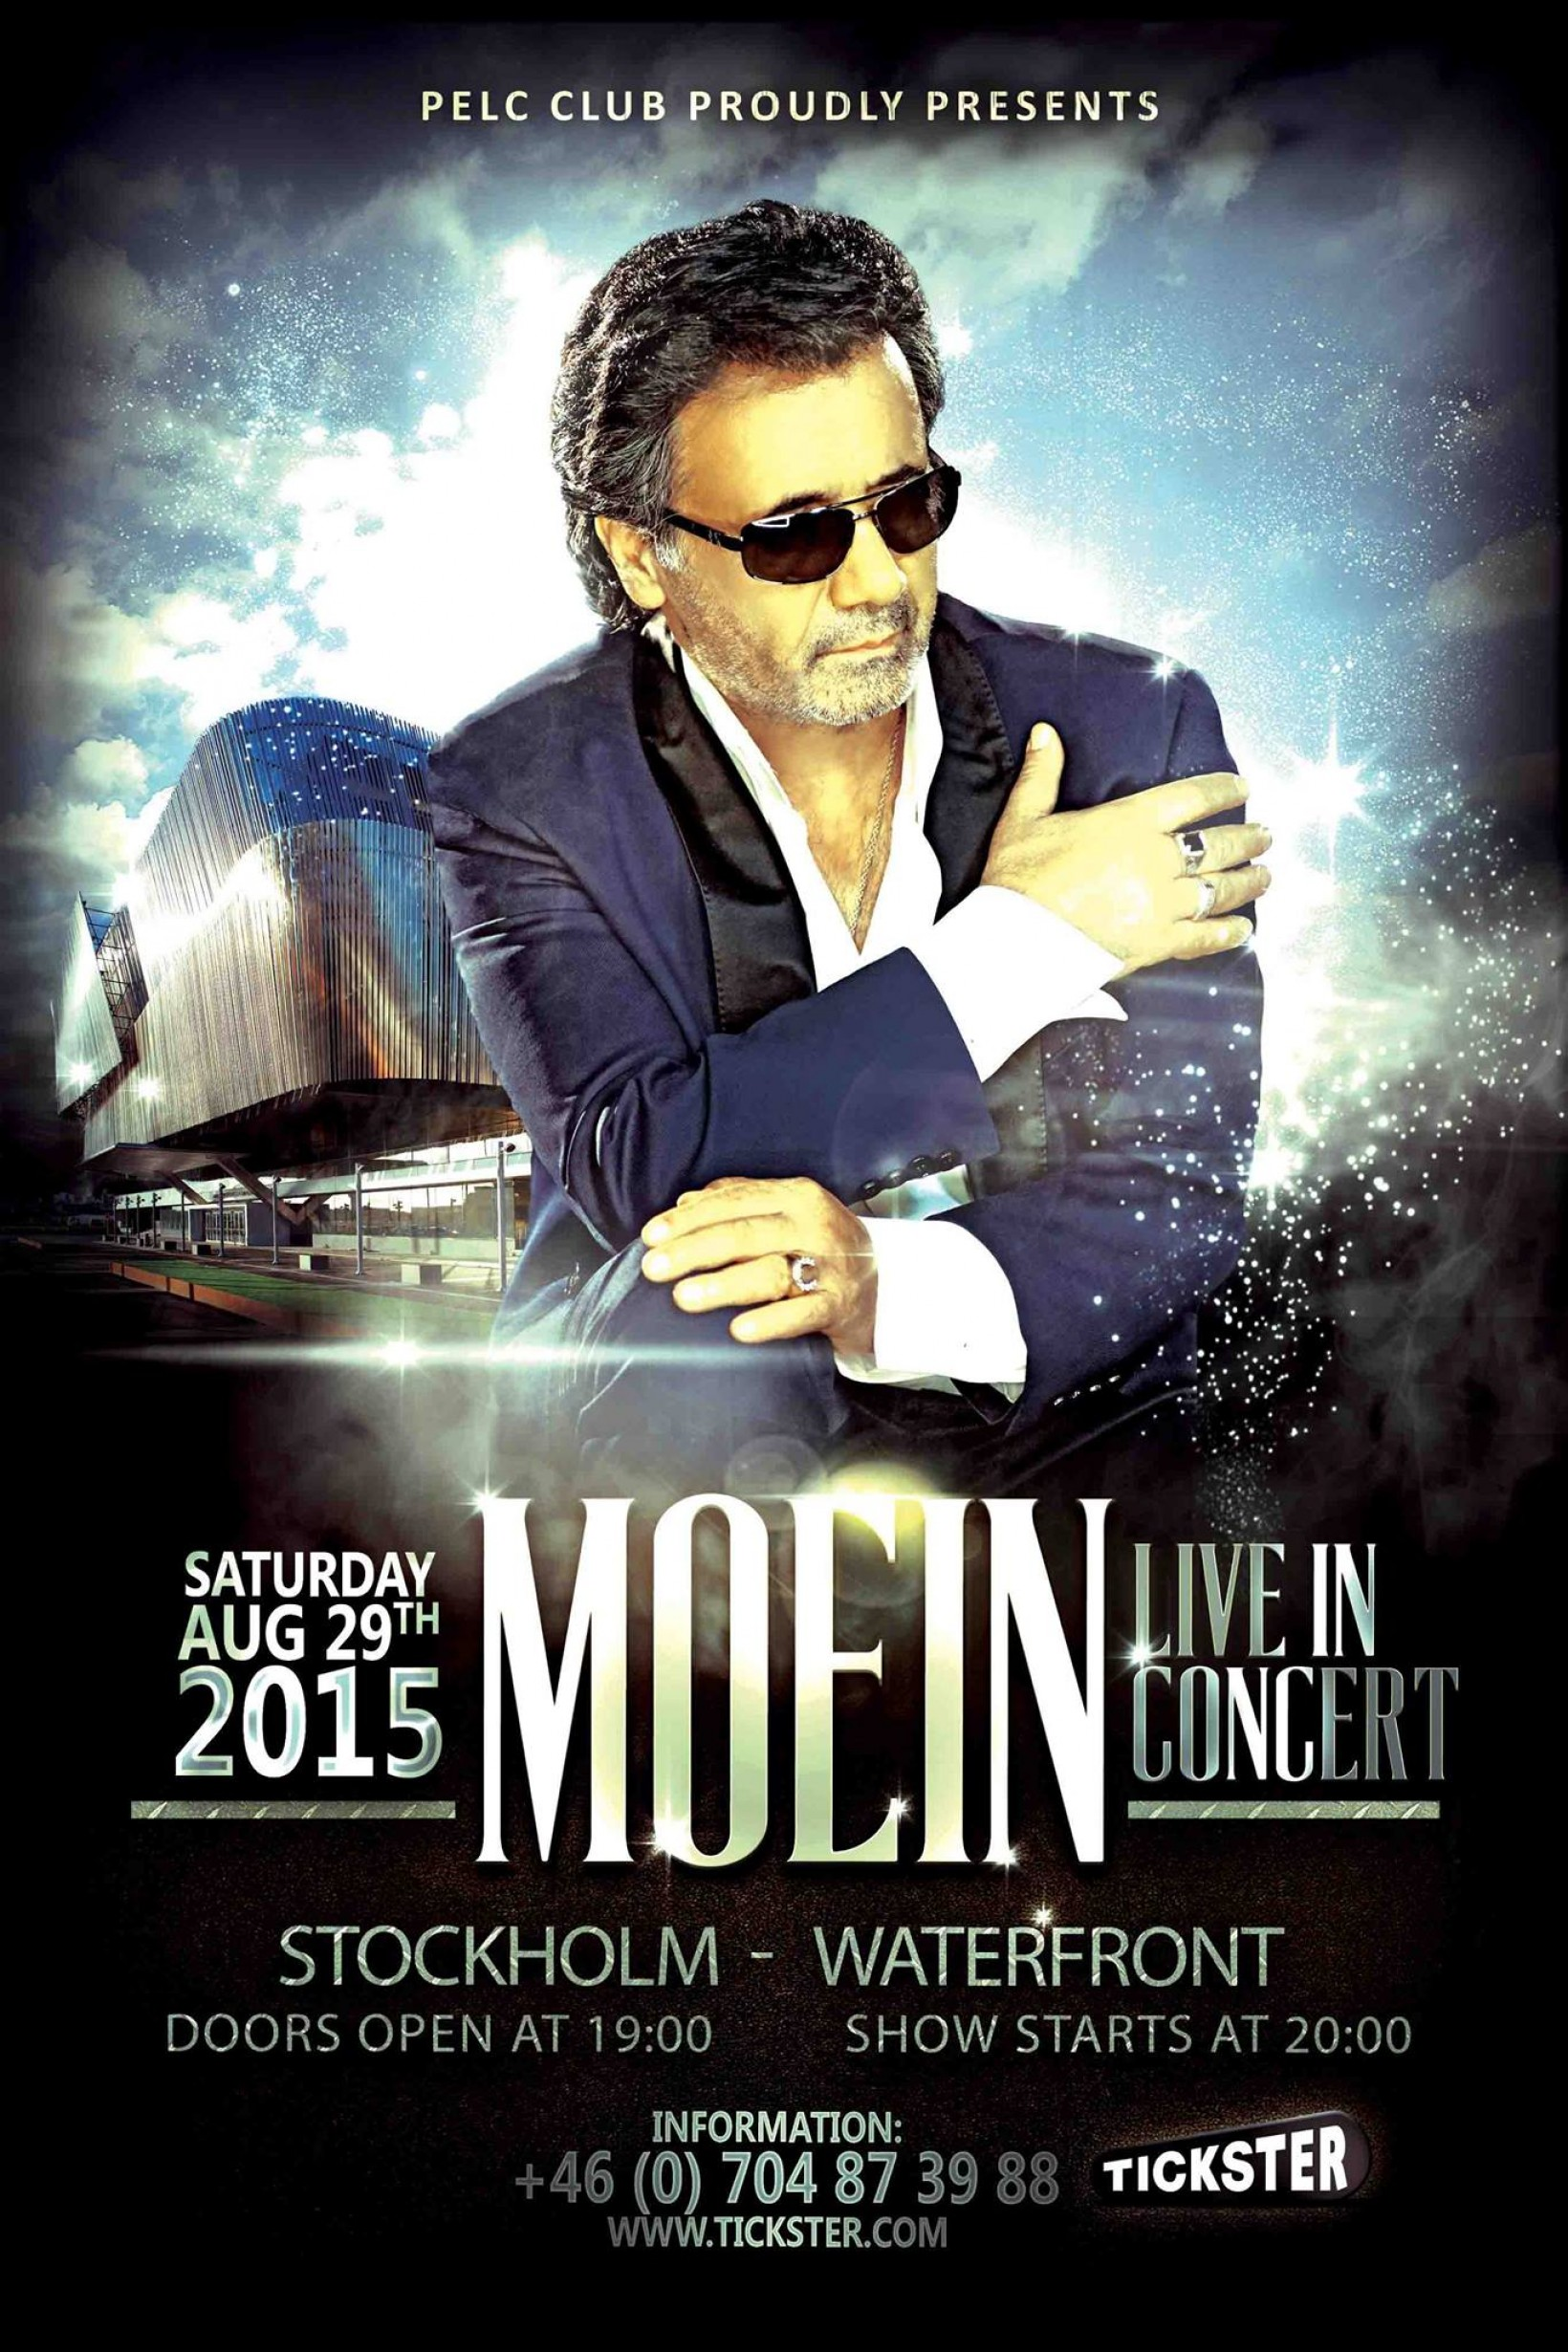 Moein Live in concert - Saturday Aug 29th